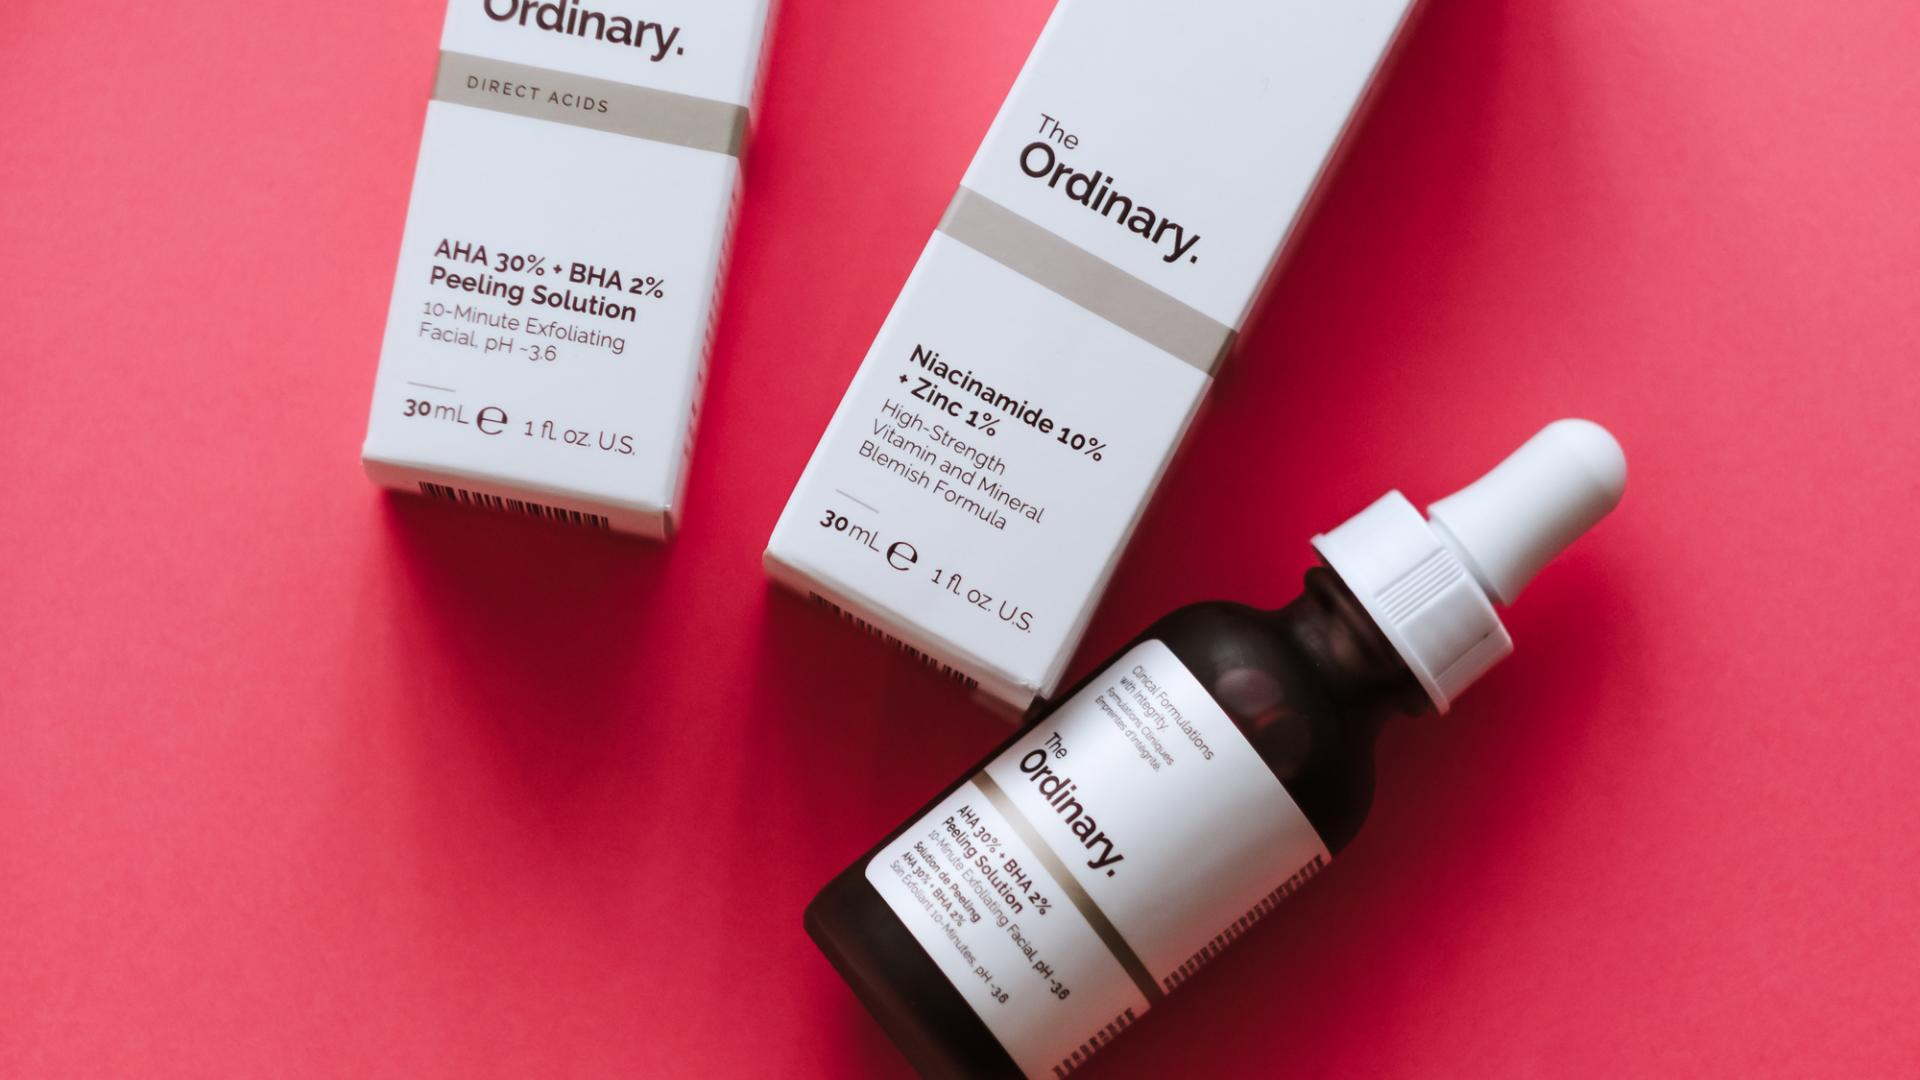 The Ordinary Alternativen Kosmetik marken wie